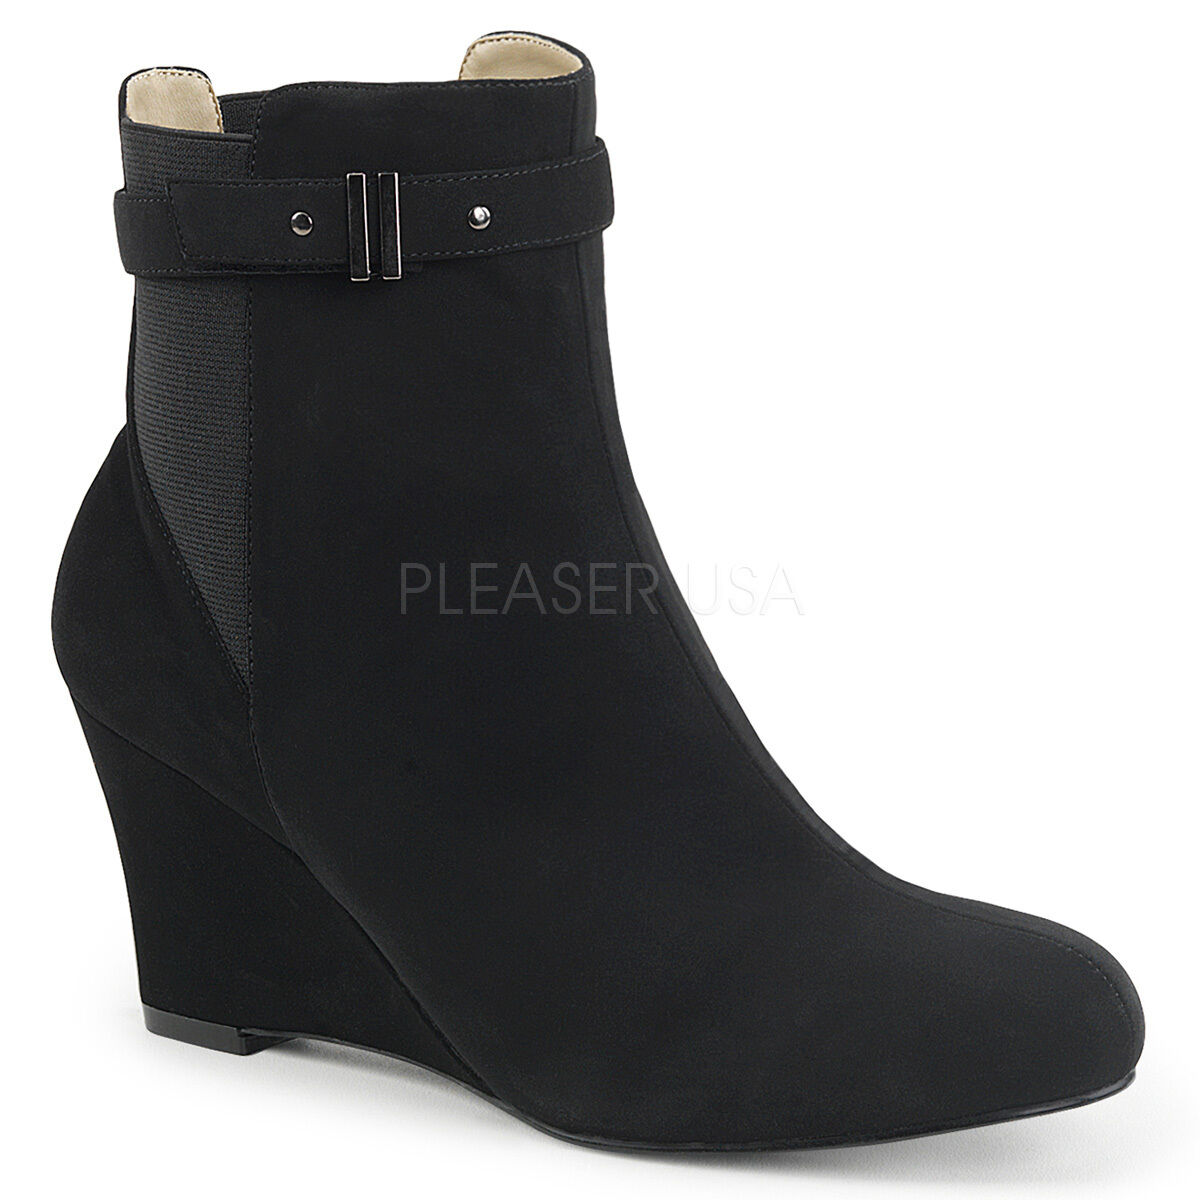 PLEASER PLEASER PLEASER 3  Wedge Heel Black Nubuck Suede Ankle High Boots Large Sizes f62749